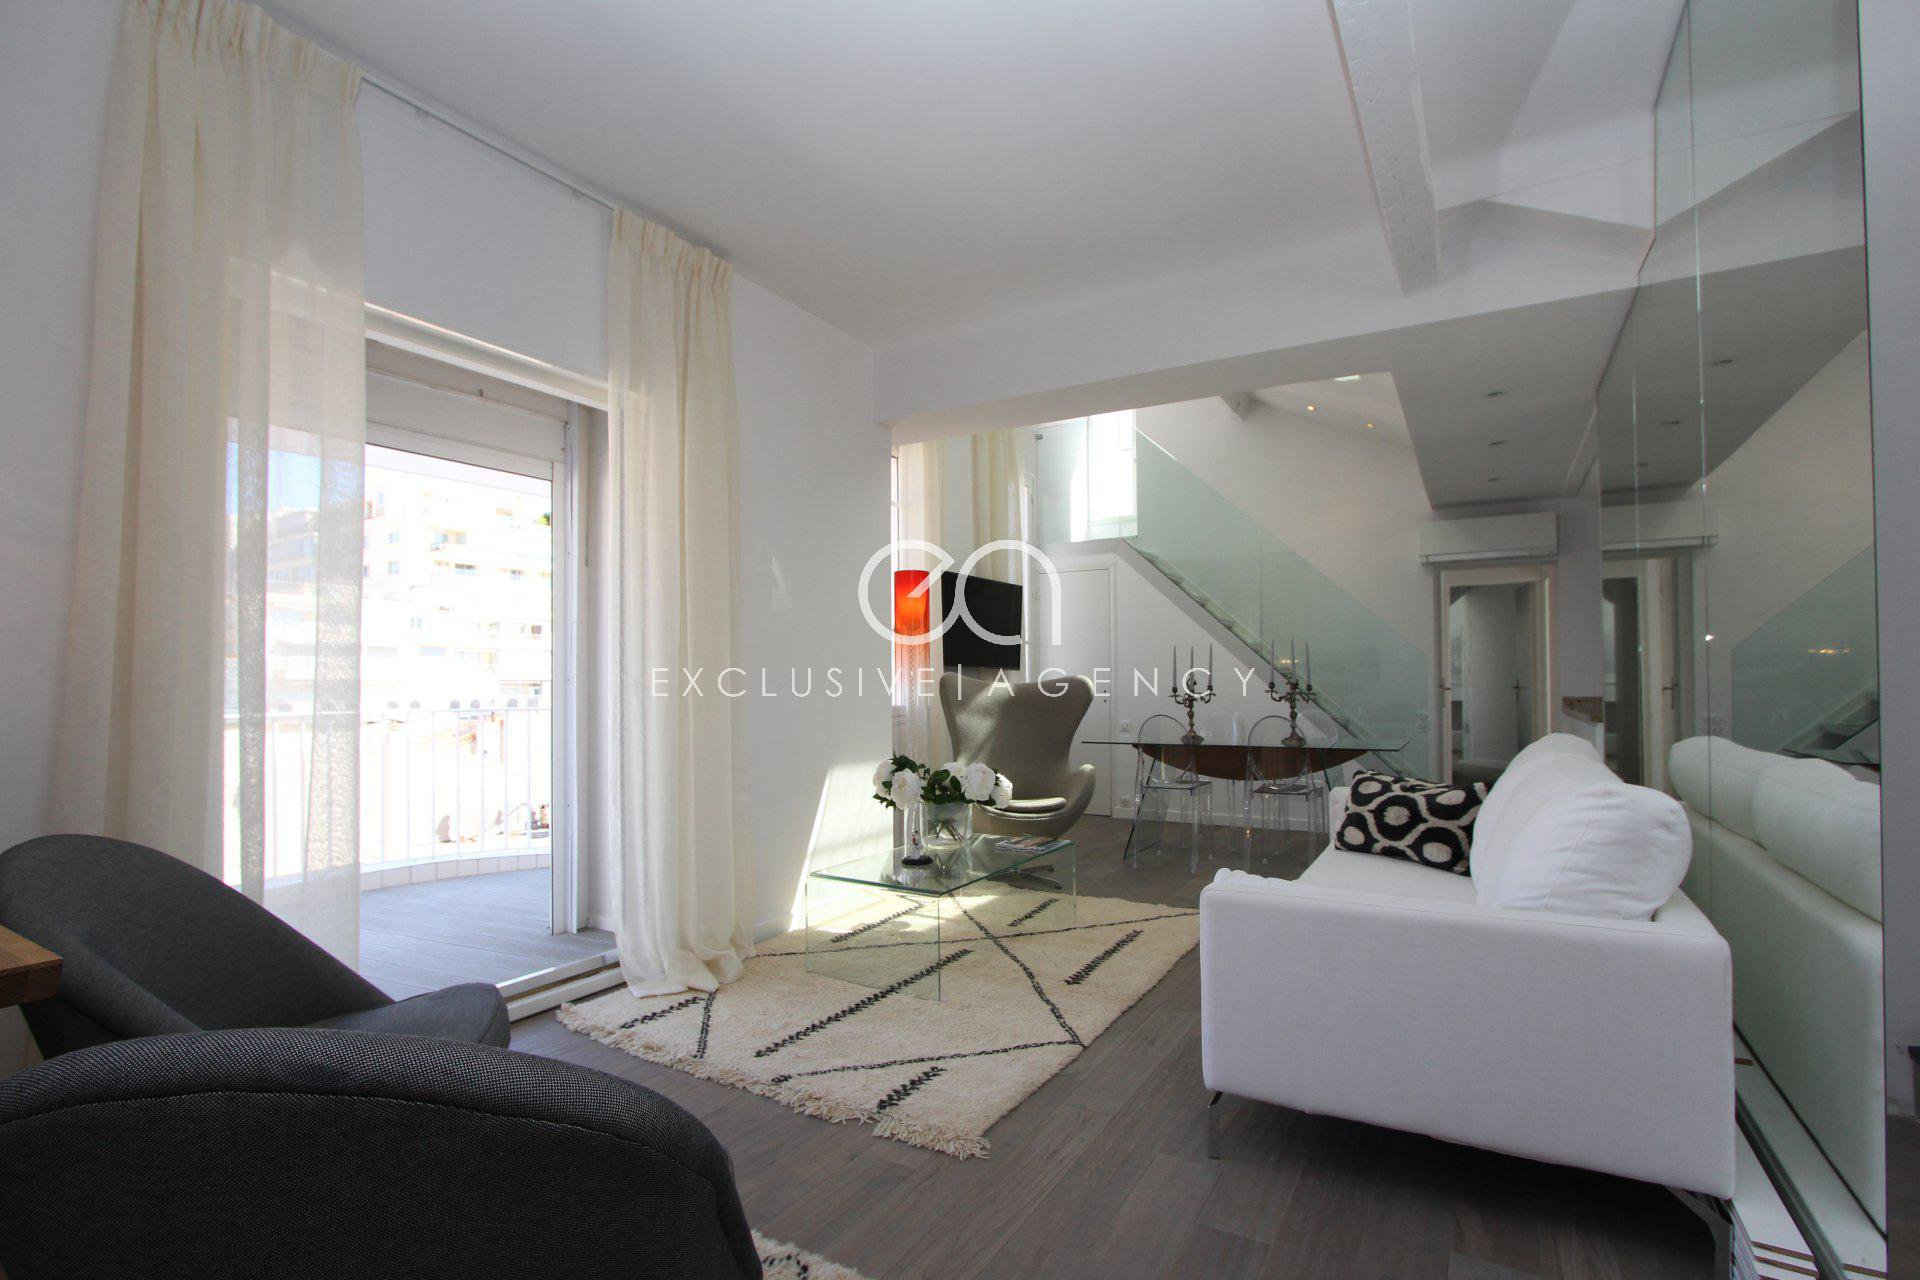 Rental for congress in Cannes luxurious 3 bedrooms 117m² with double terrace for 3 to 8 people.